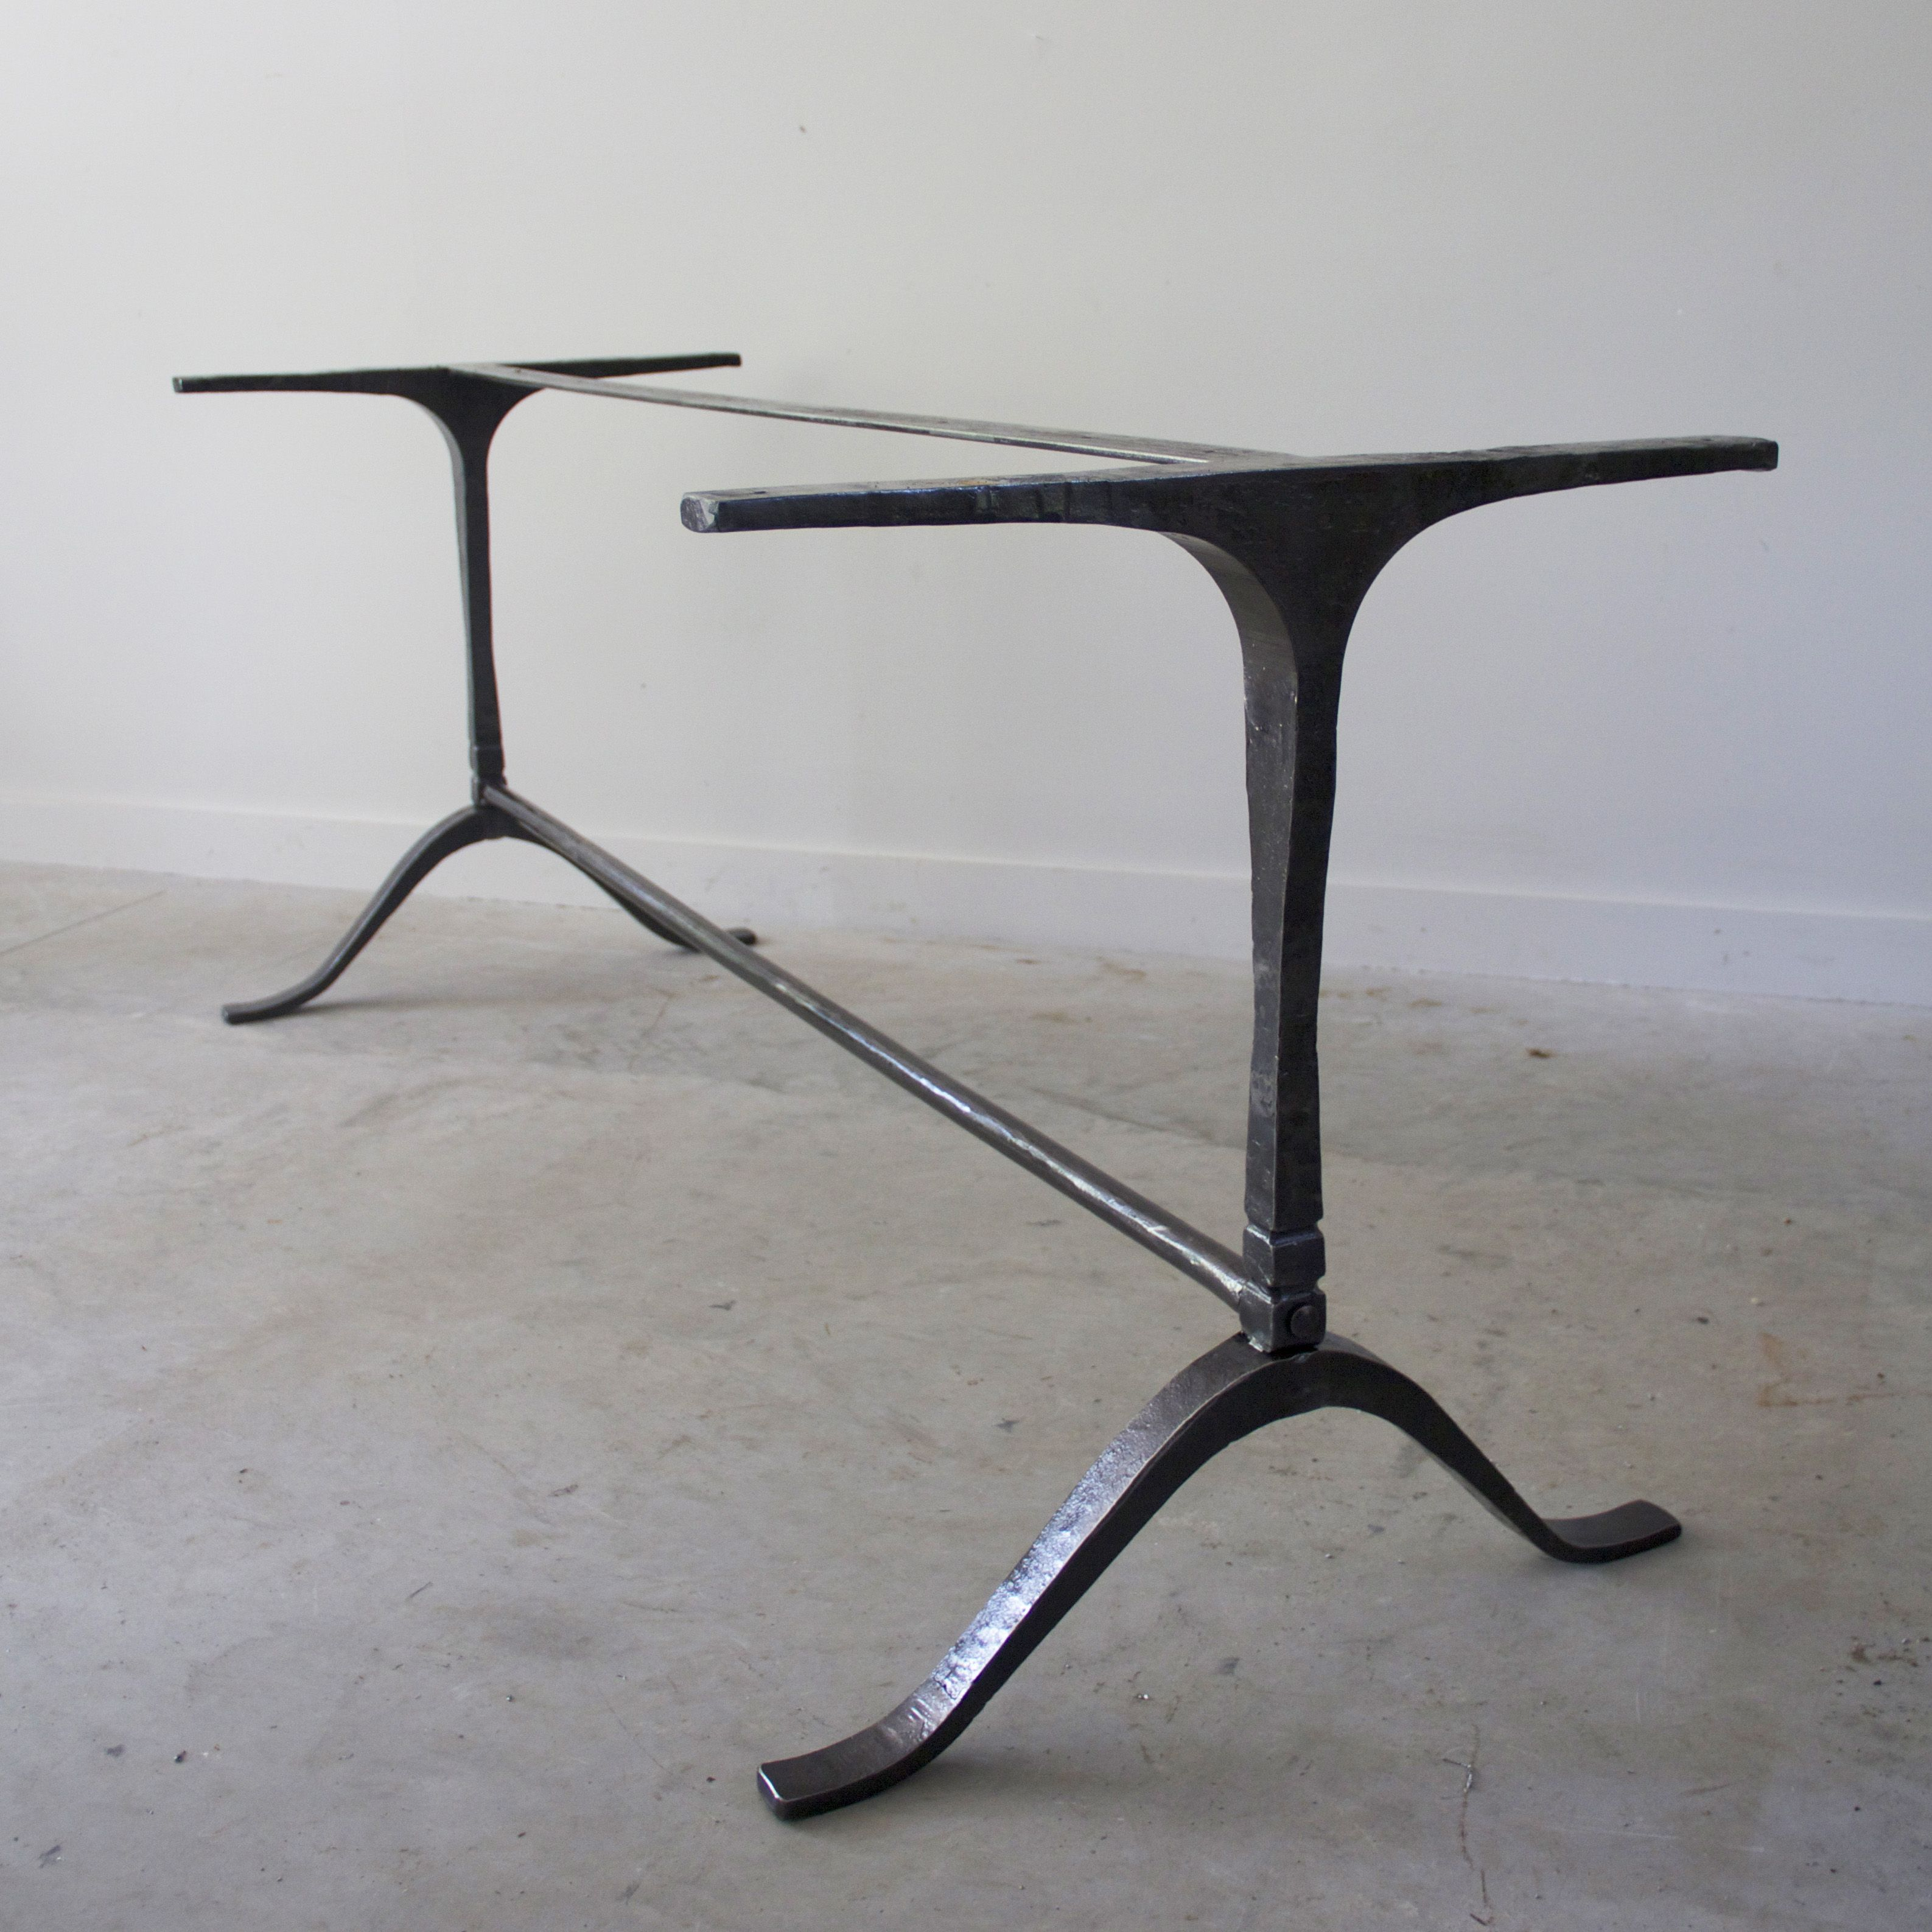 Custom Coffee Table Bases: Wrought Iron Wishbone Trestle Table Base. Built To Suit